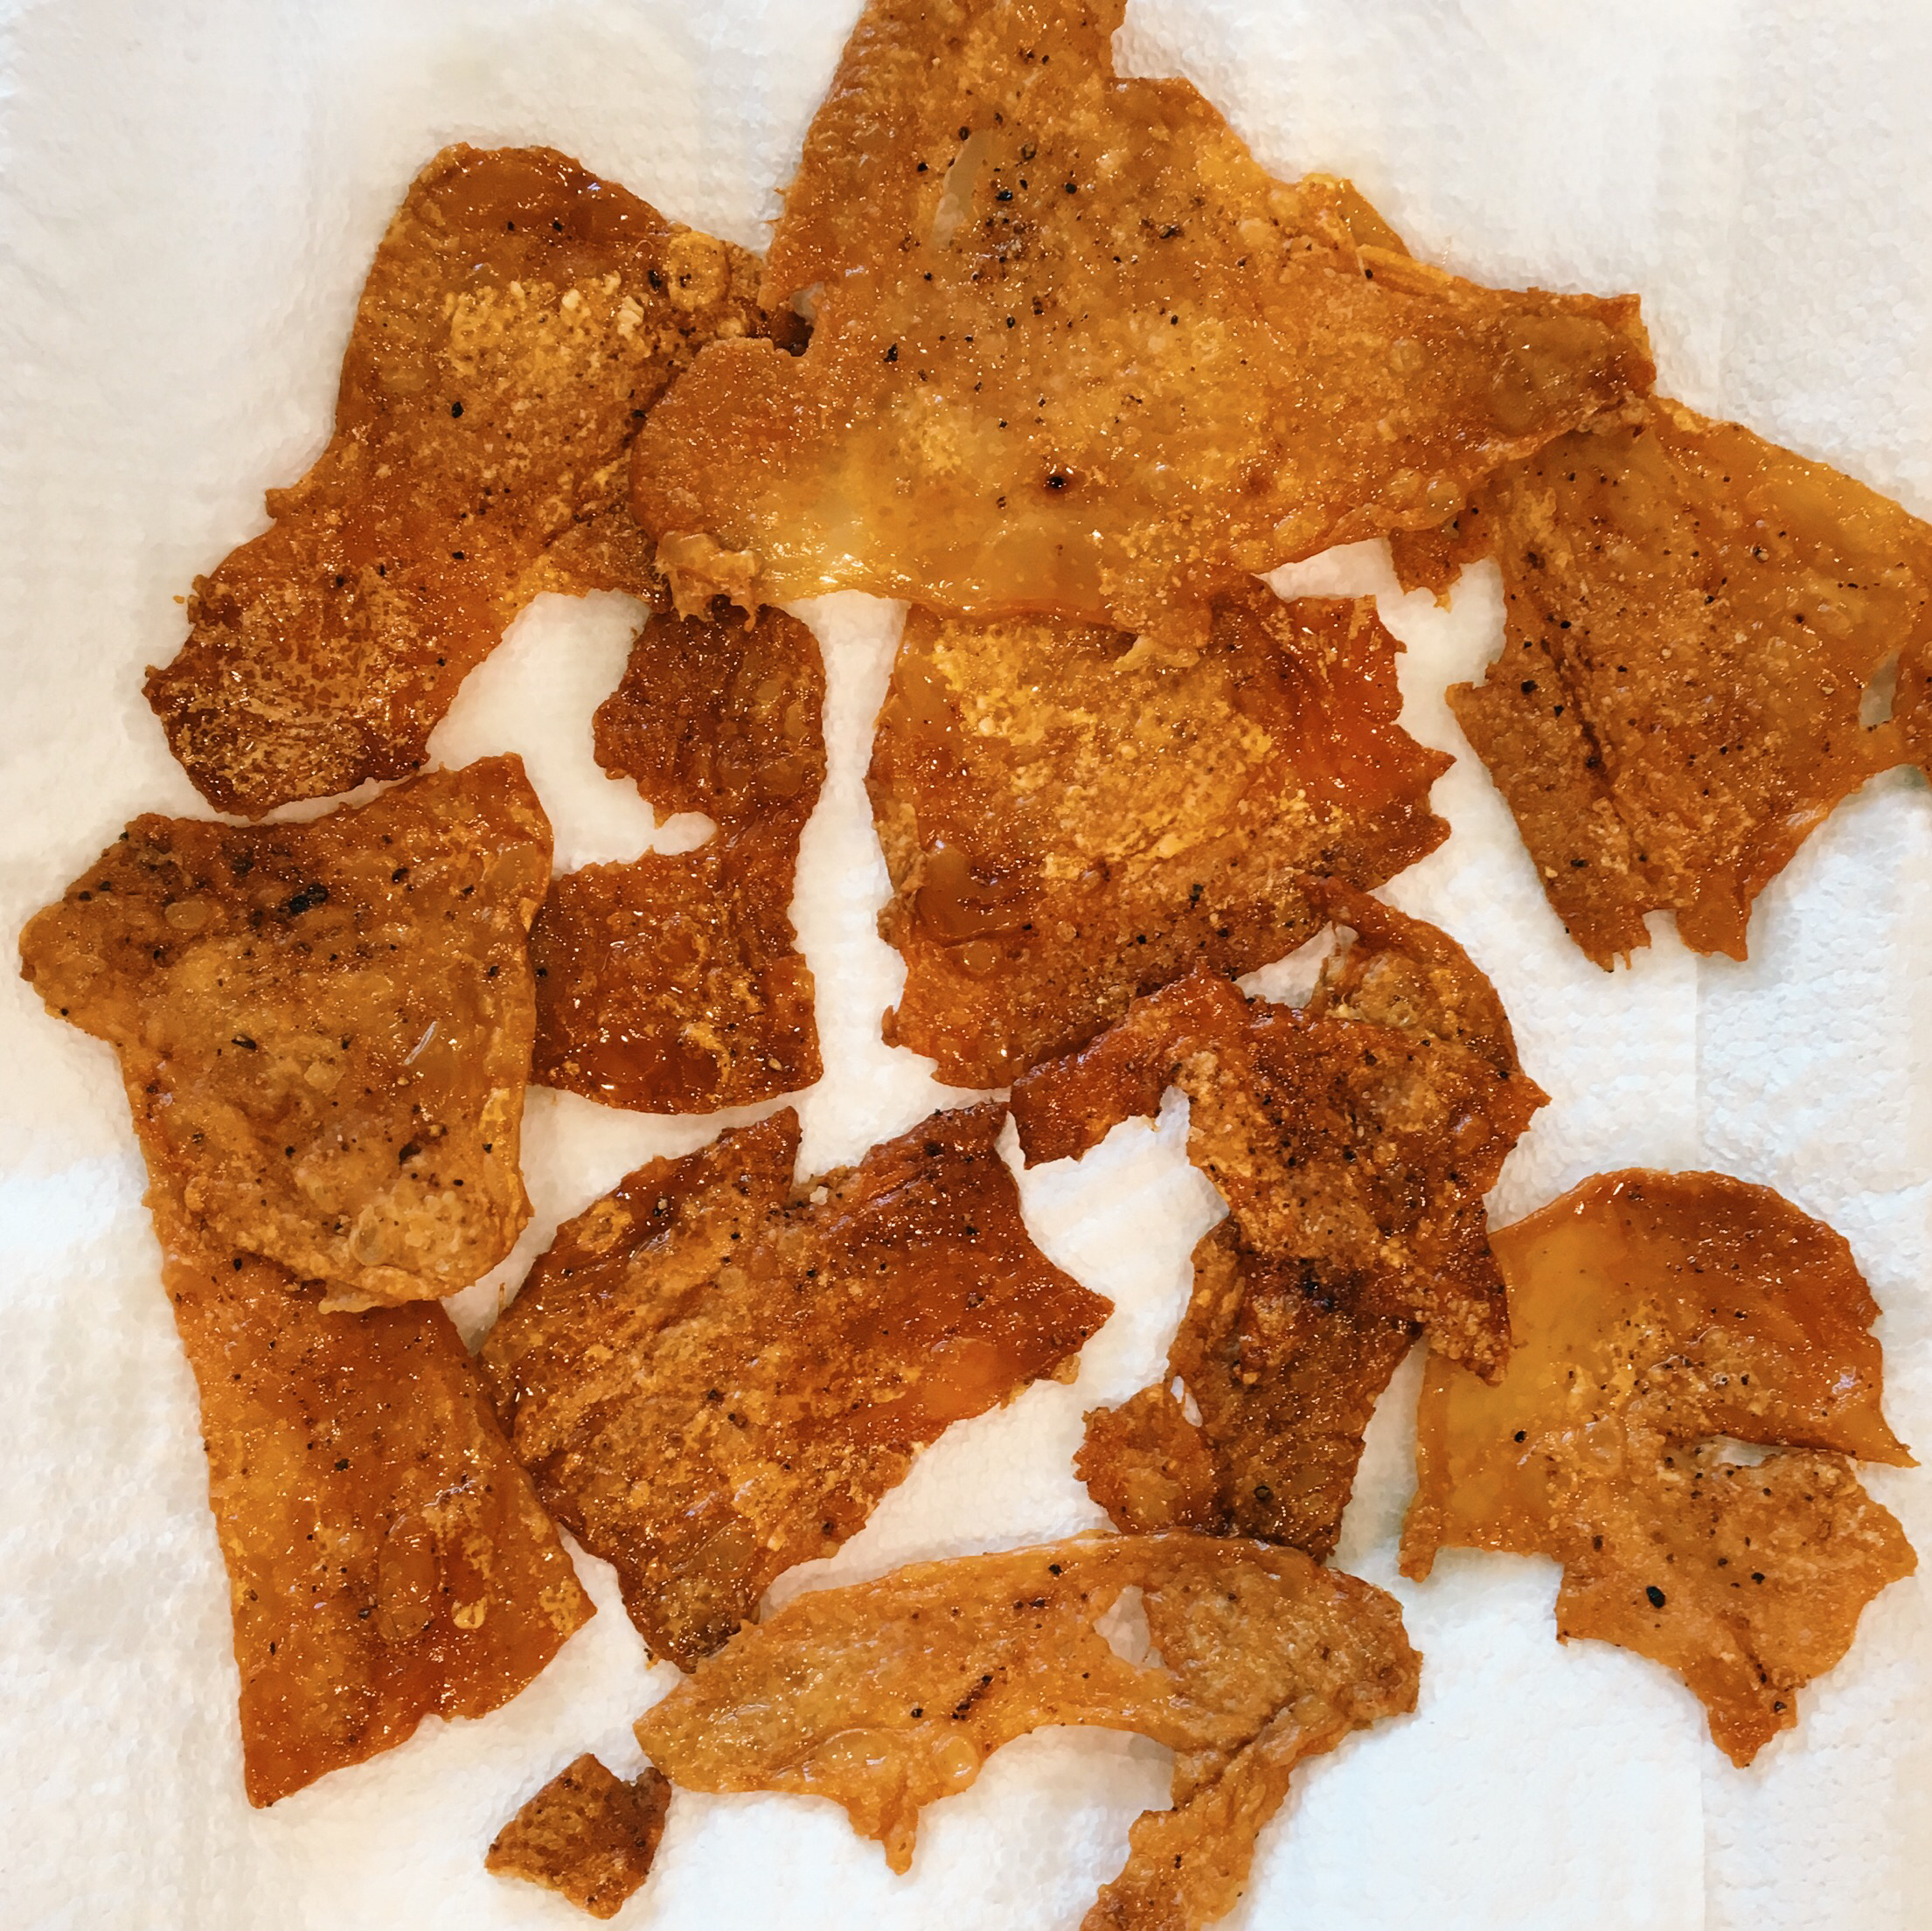 Cooked chicken skins